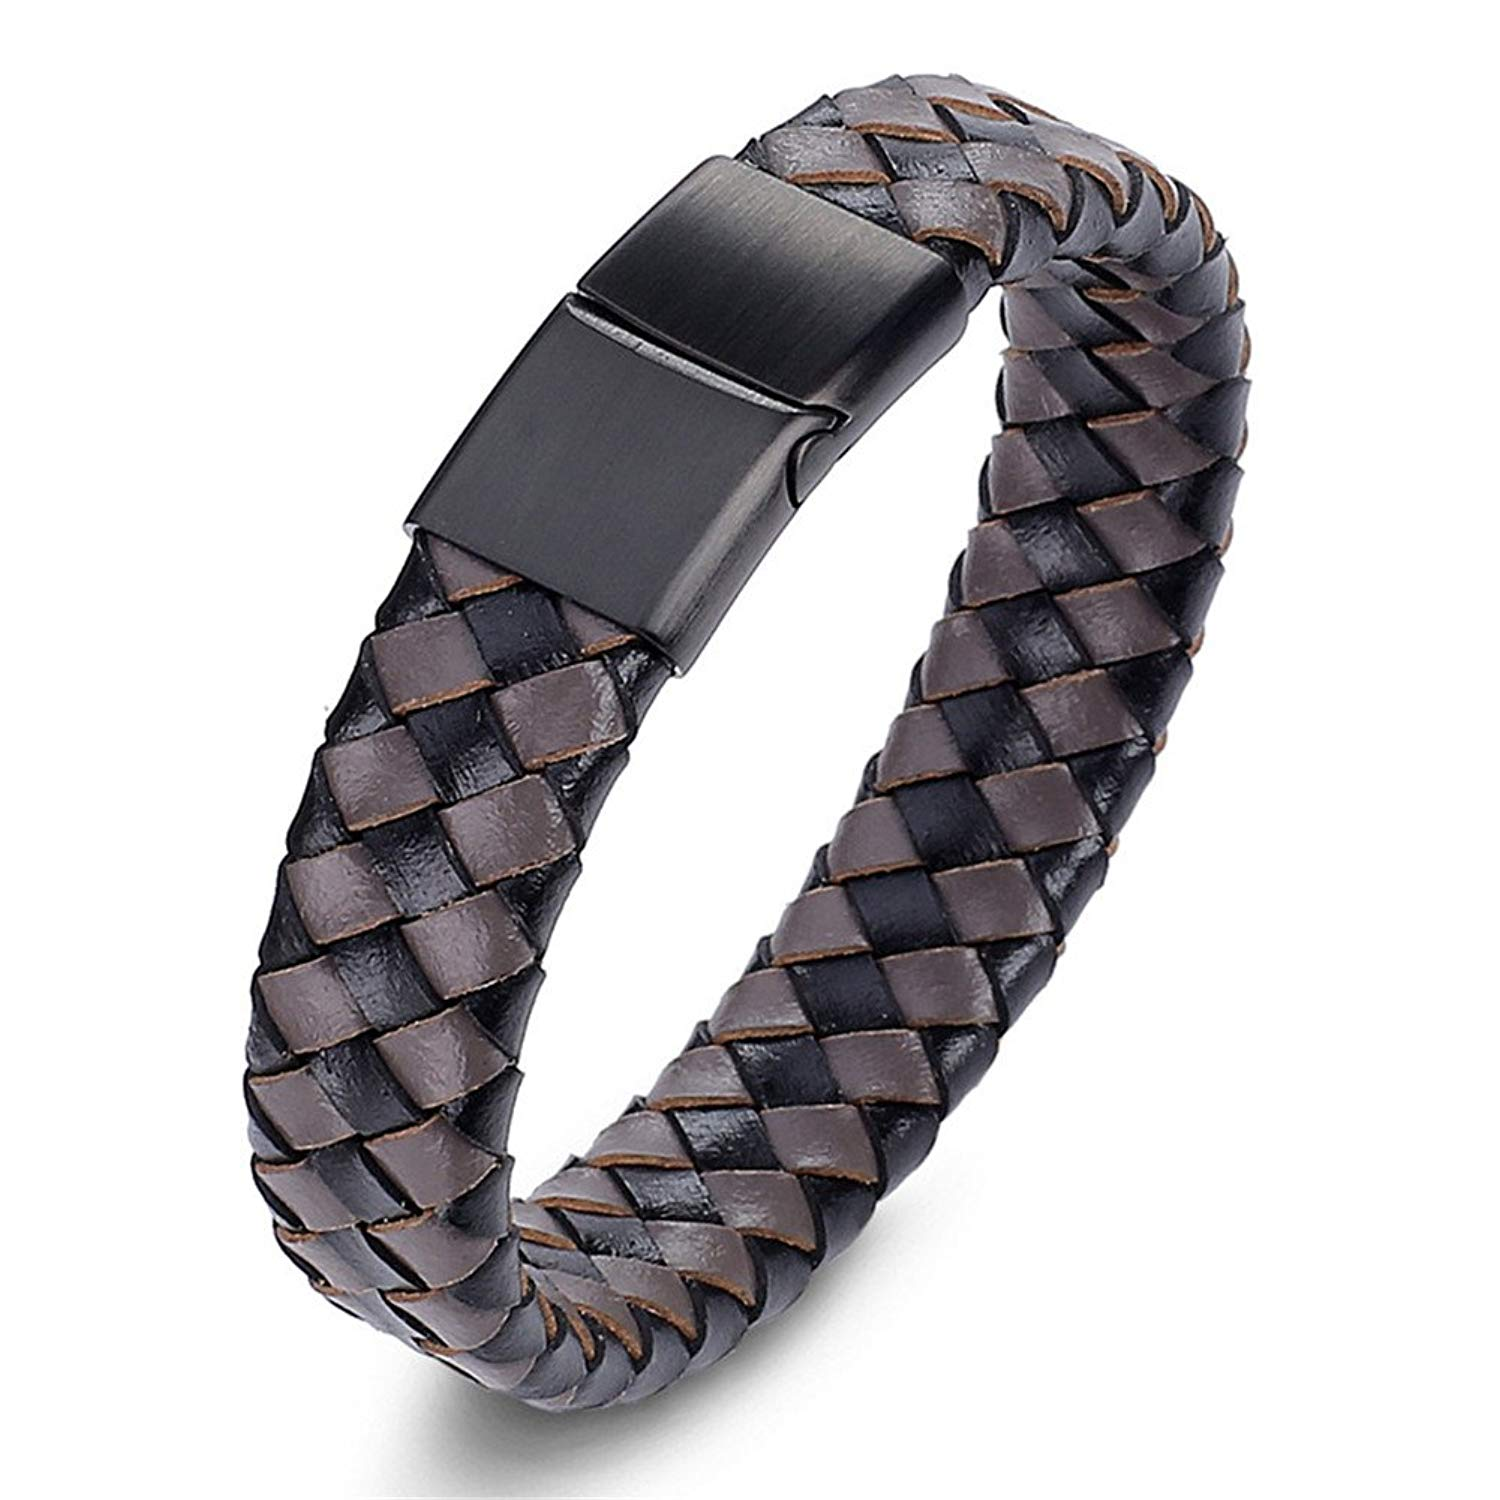 LiFashion LF Mens Free Engraving Personalized Name Date Stainless Steel Genuine Braided Wide Leather Bracelet Heavy Cuff Bangle for Boyfriend Dad Husband Gift Customized,Brown Black